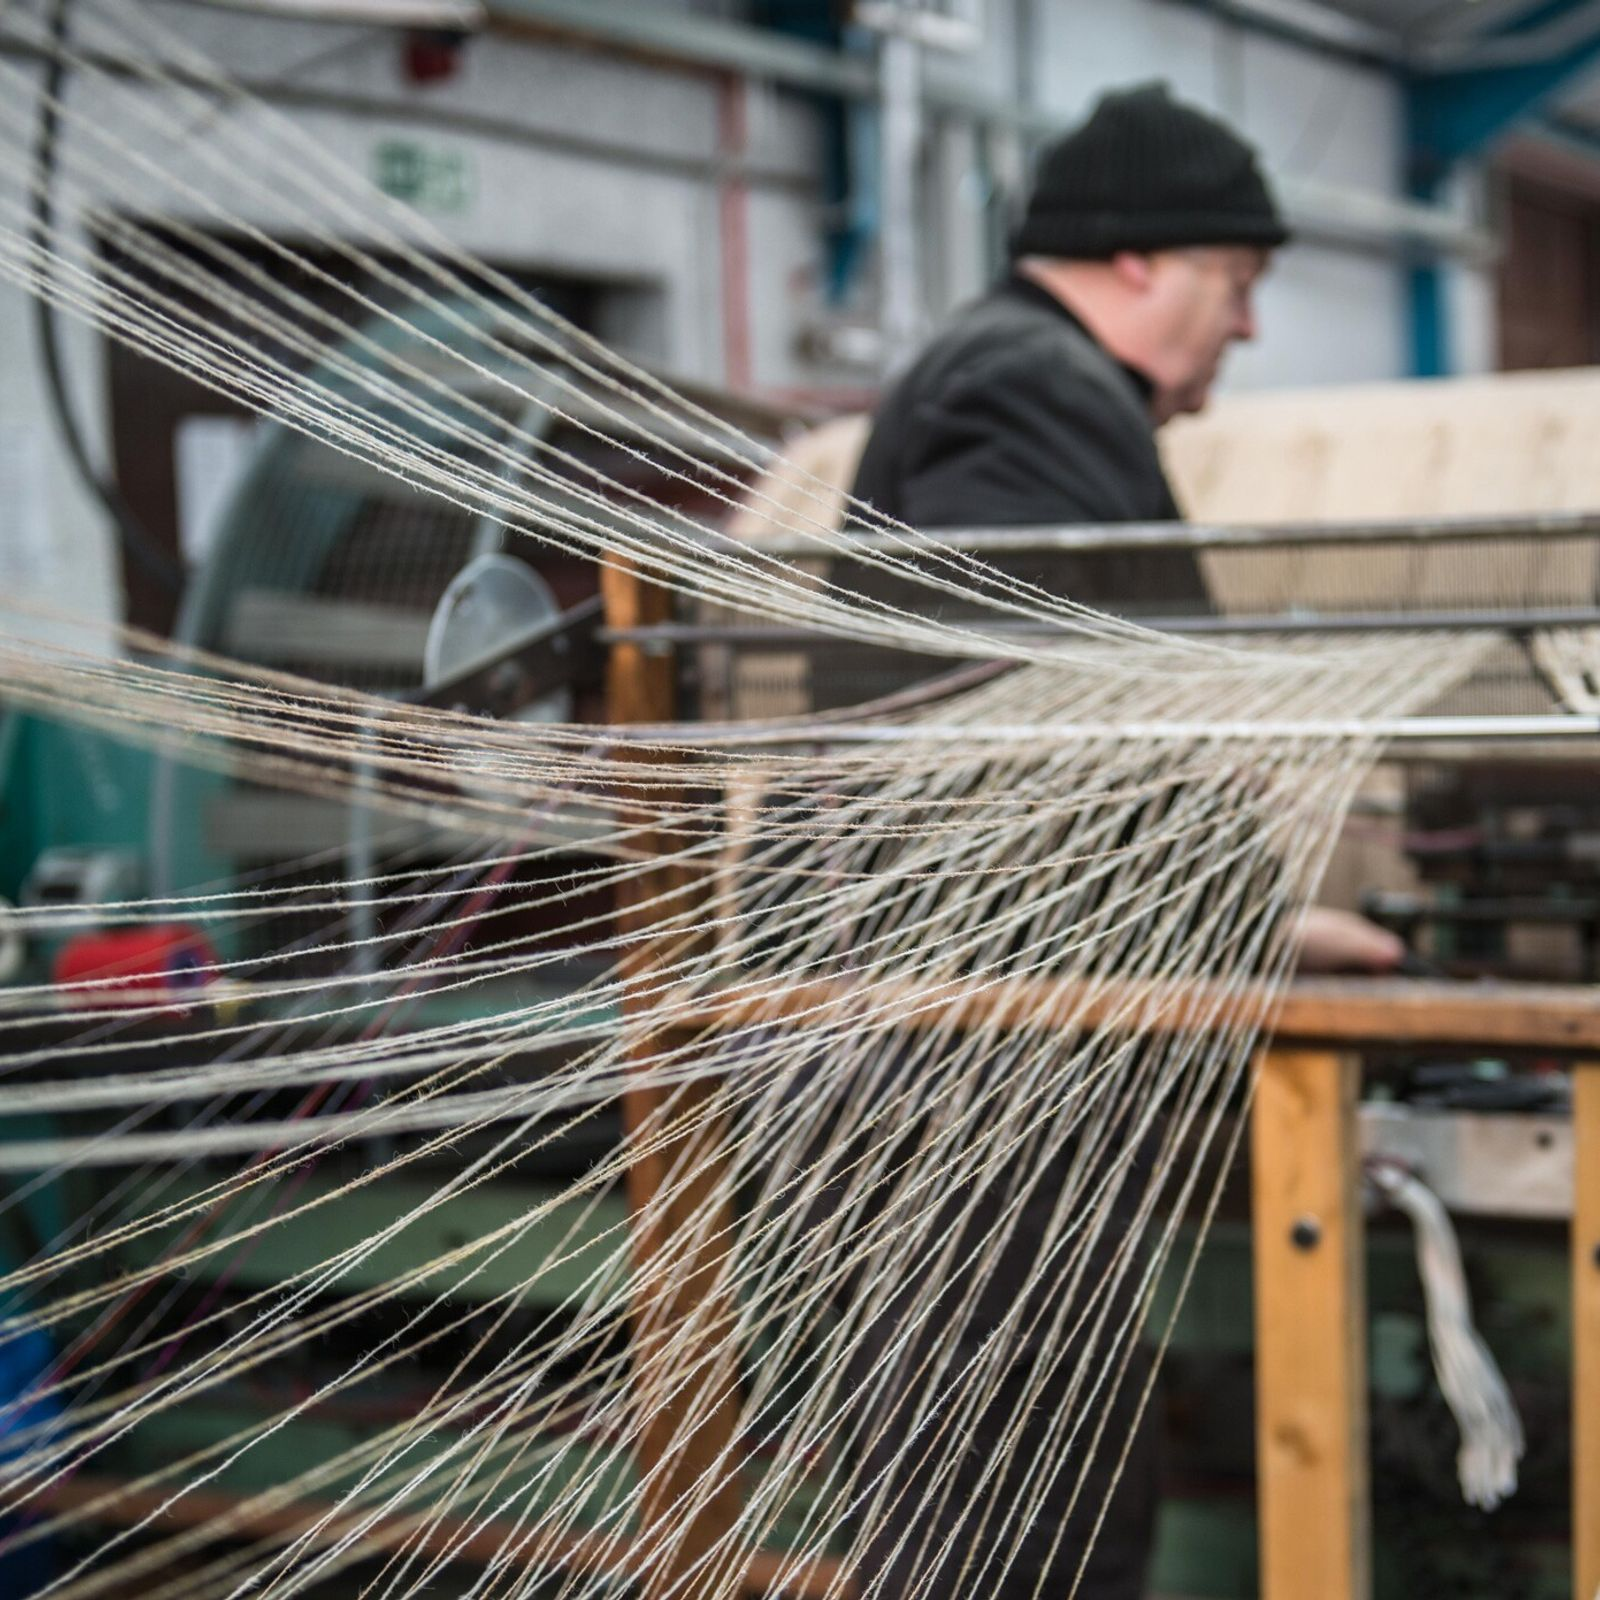 A worker in the Outer Hebrides produces tweed on an outsized loom.